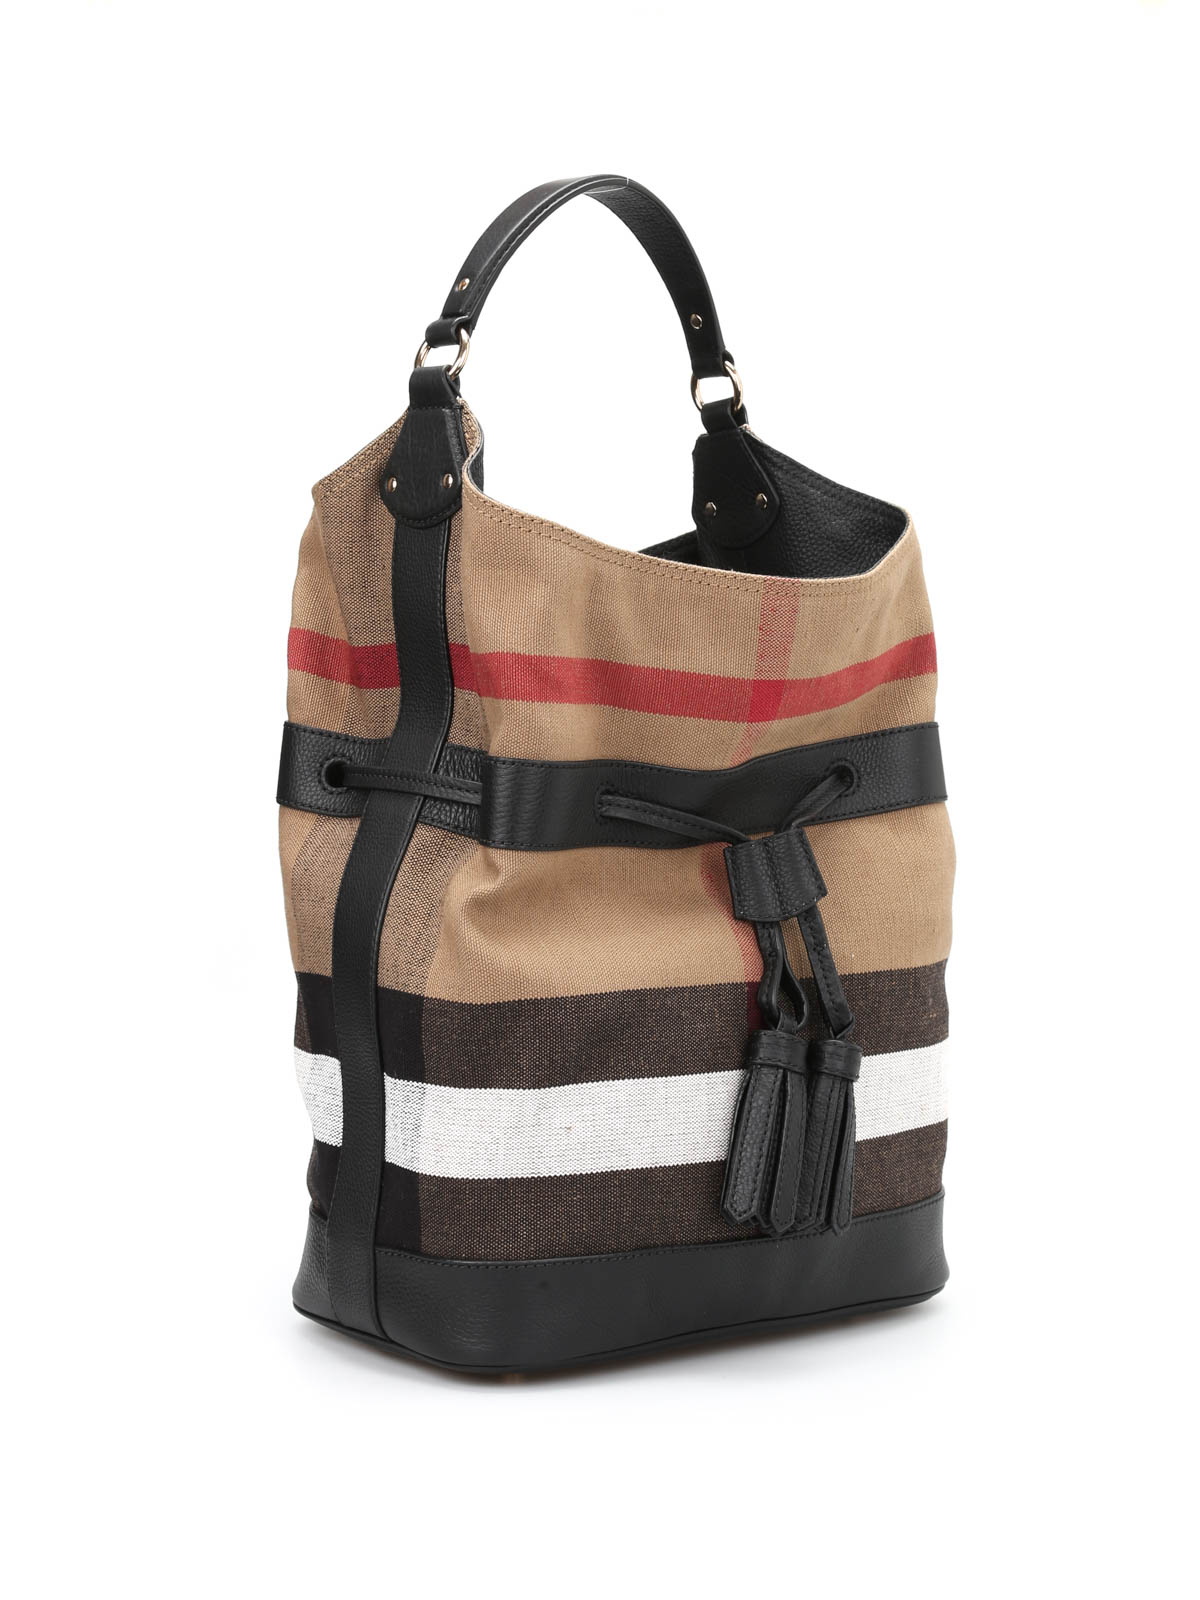 burberry bucket bag price, Burberry Clothing & Bag - Up to 40% - 70% off Discount sale